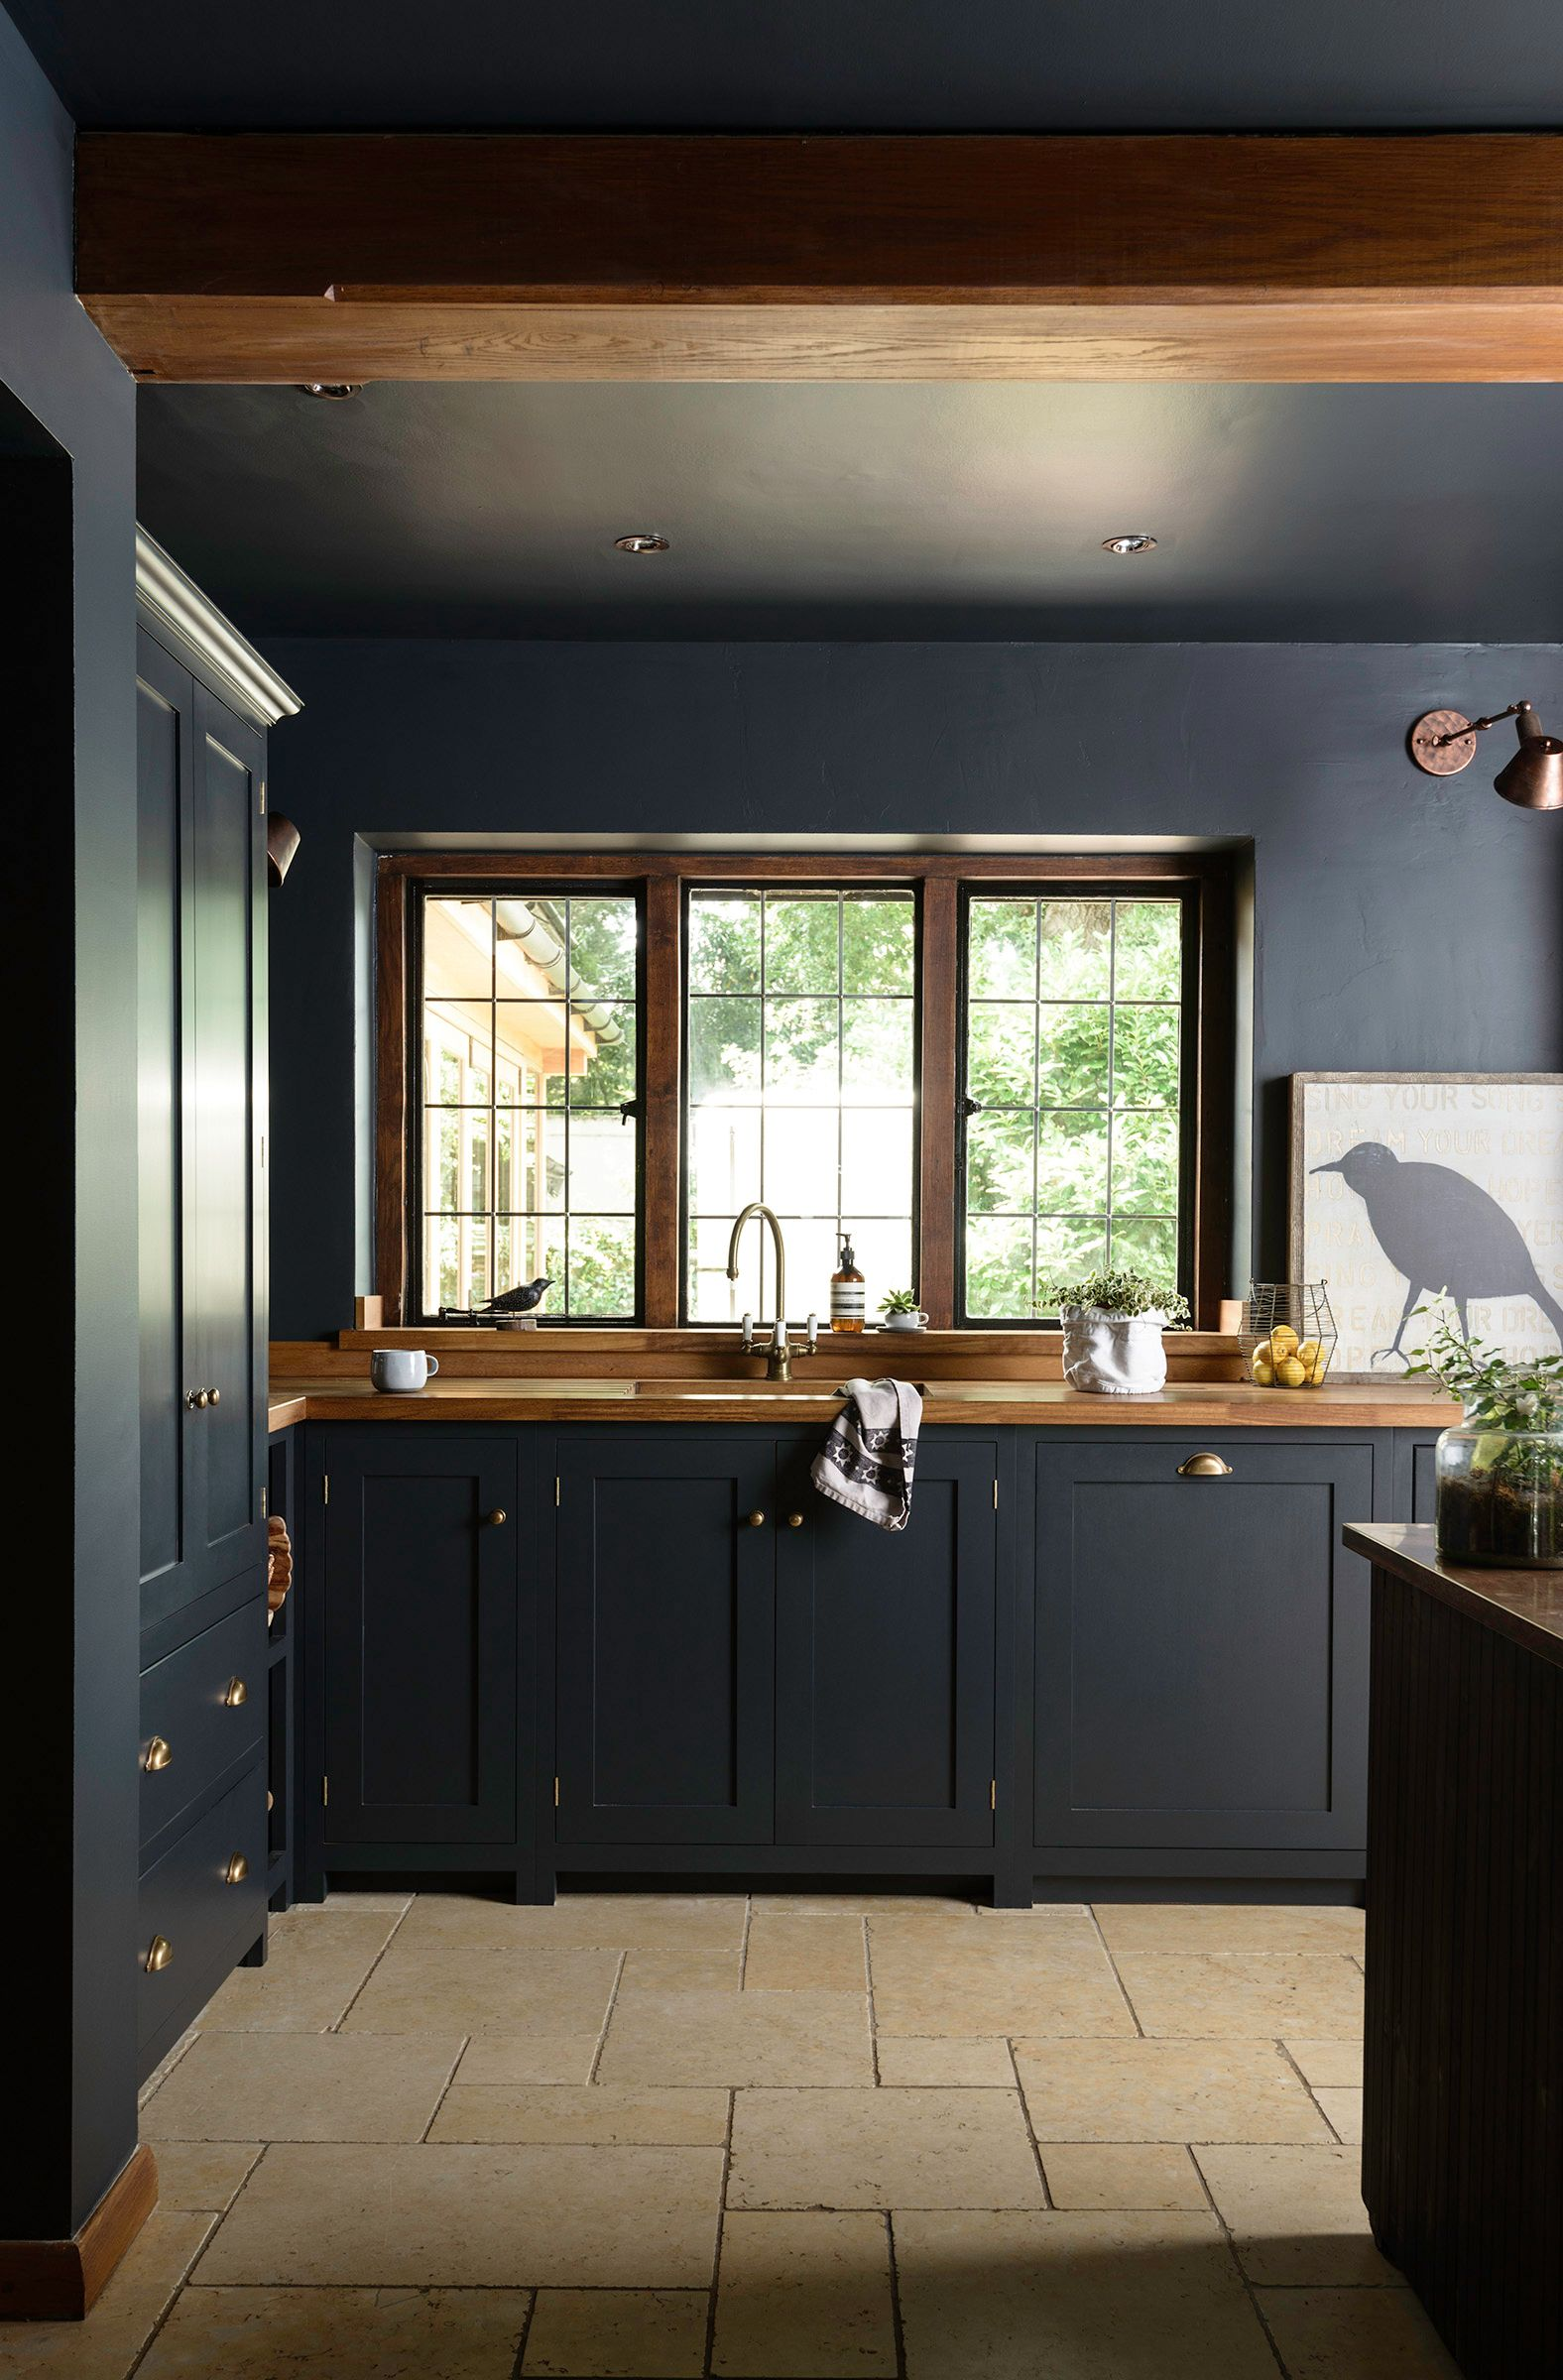 How To Brighten Up A Dark Kitchen Without Painting The Iroko Worktops And Copper Sink Were Such A Soft And Welcome Change From Stone And Worked With Th Interior Design Kitchen Dark Kitchen Dark Kitchen Cabinets